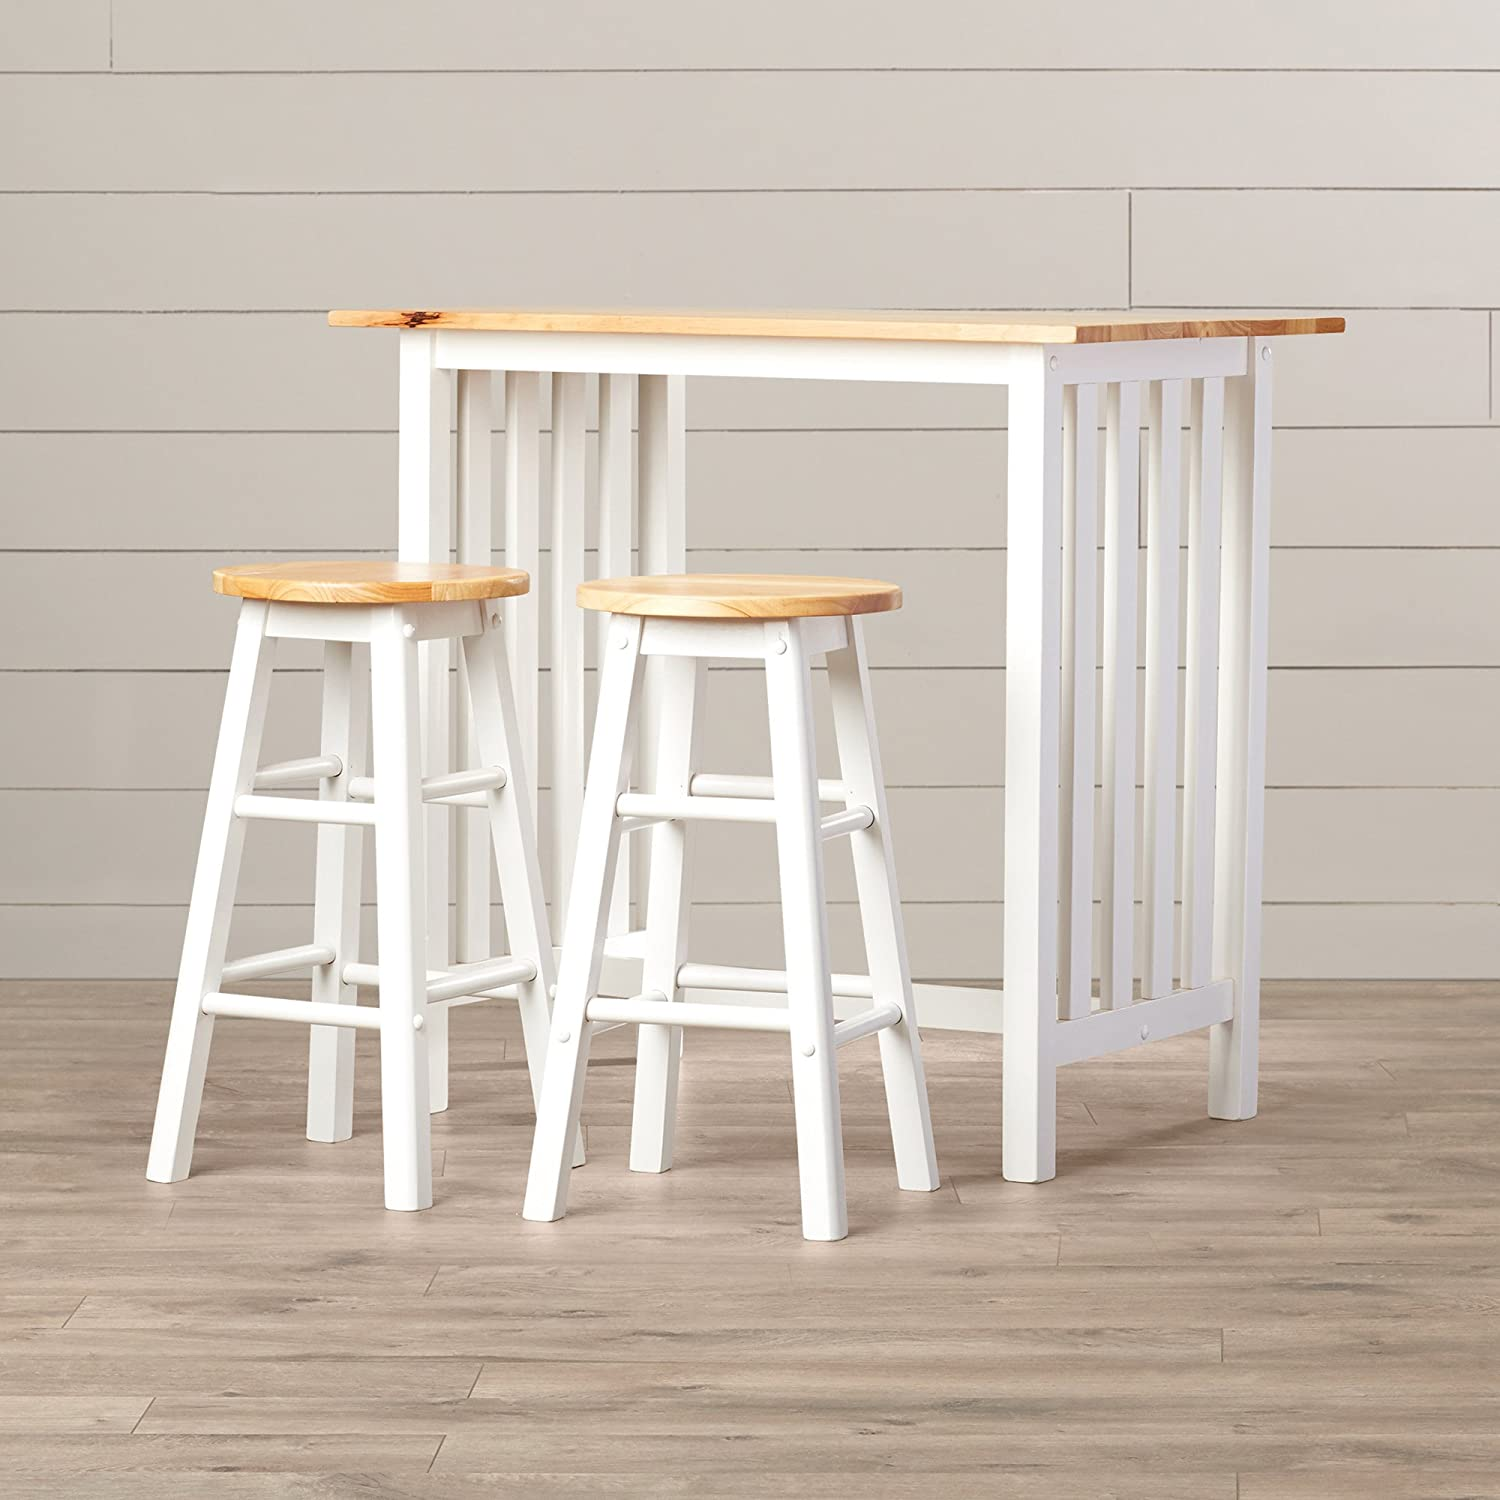 Counter Height Table Set - 3 Piece Home Pub or Breakfast Furniture - Table And 2 Chairs - Quality Furniture - White With Natural Birch Wood Top